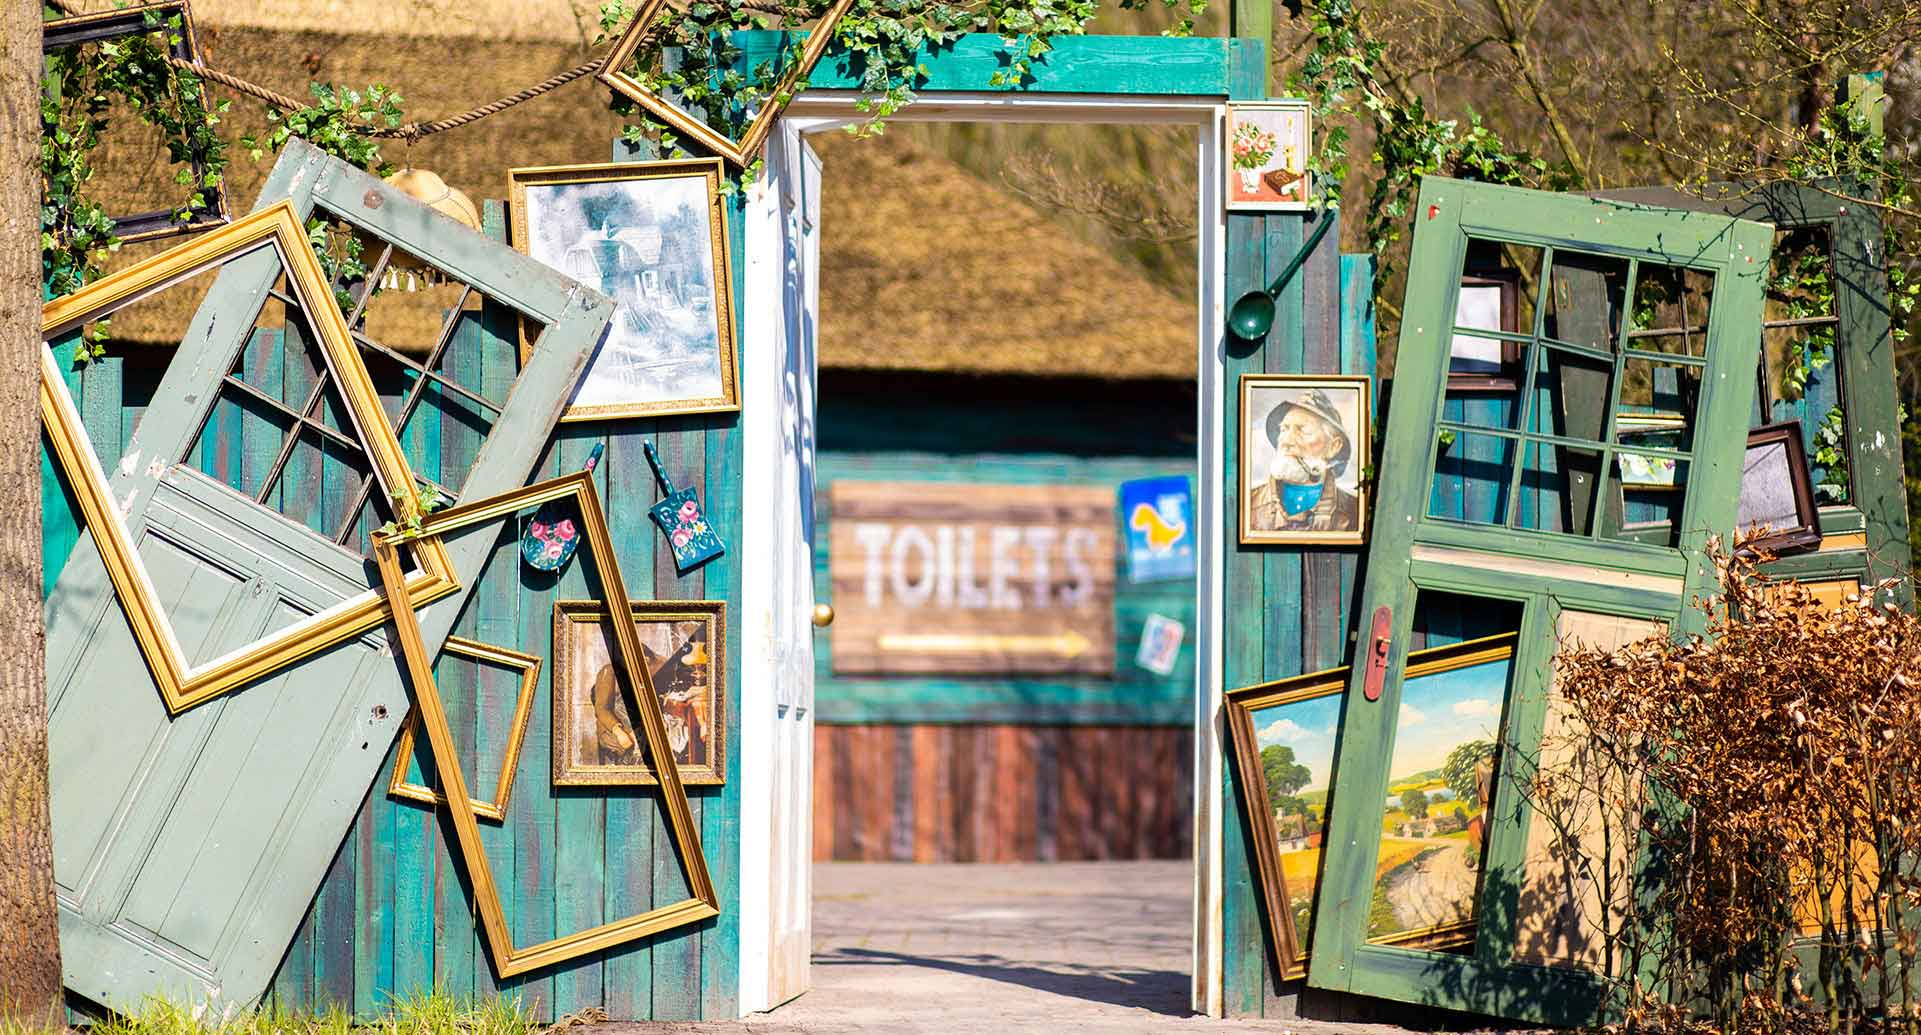 Photo of doorpost at the new Wilderness area at Walibi Holland